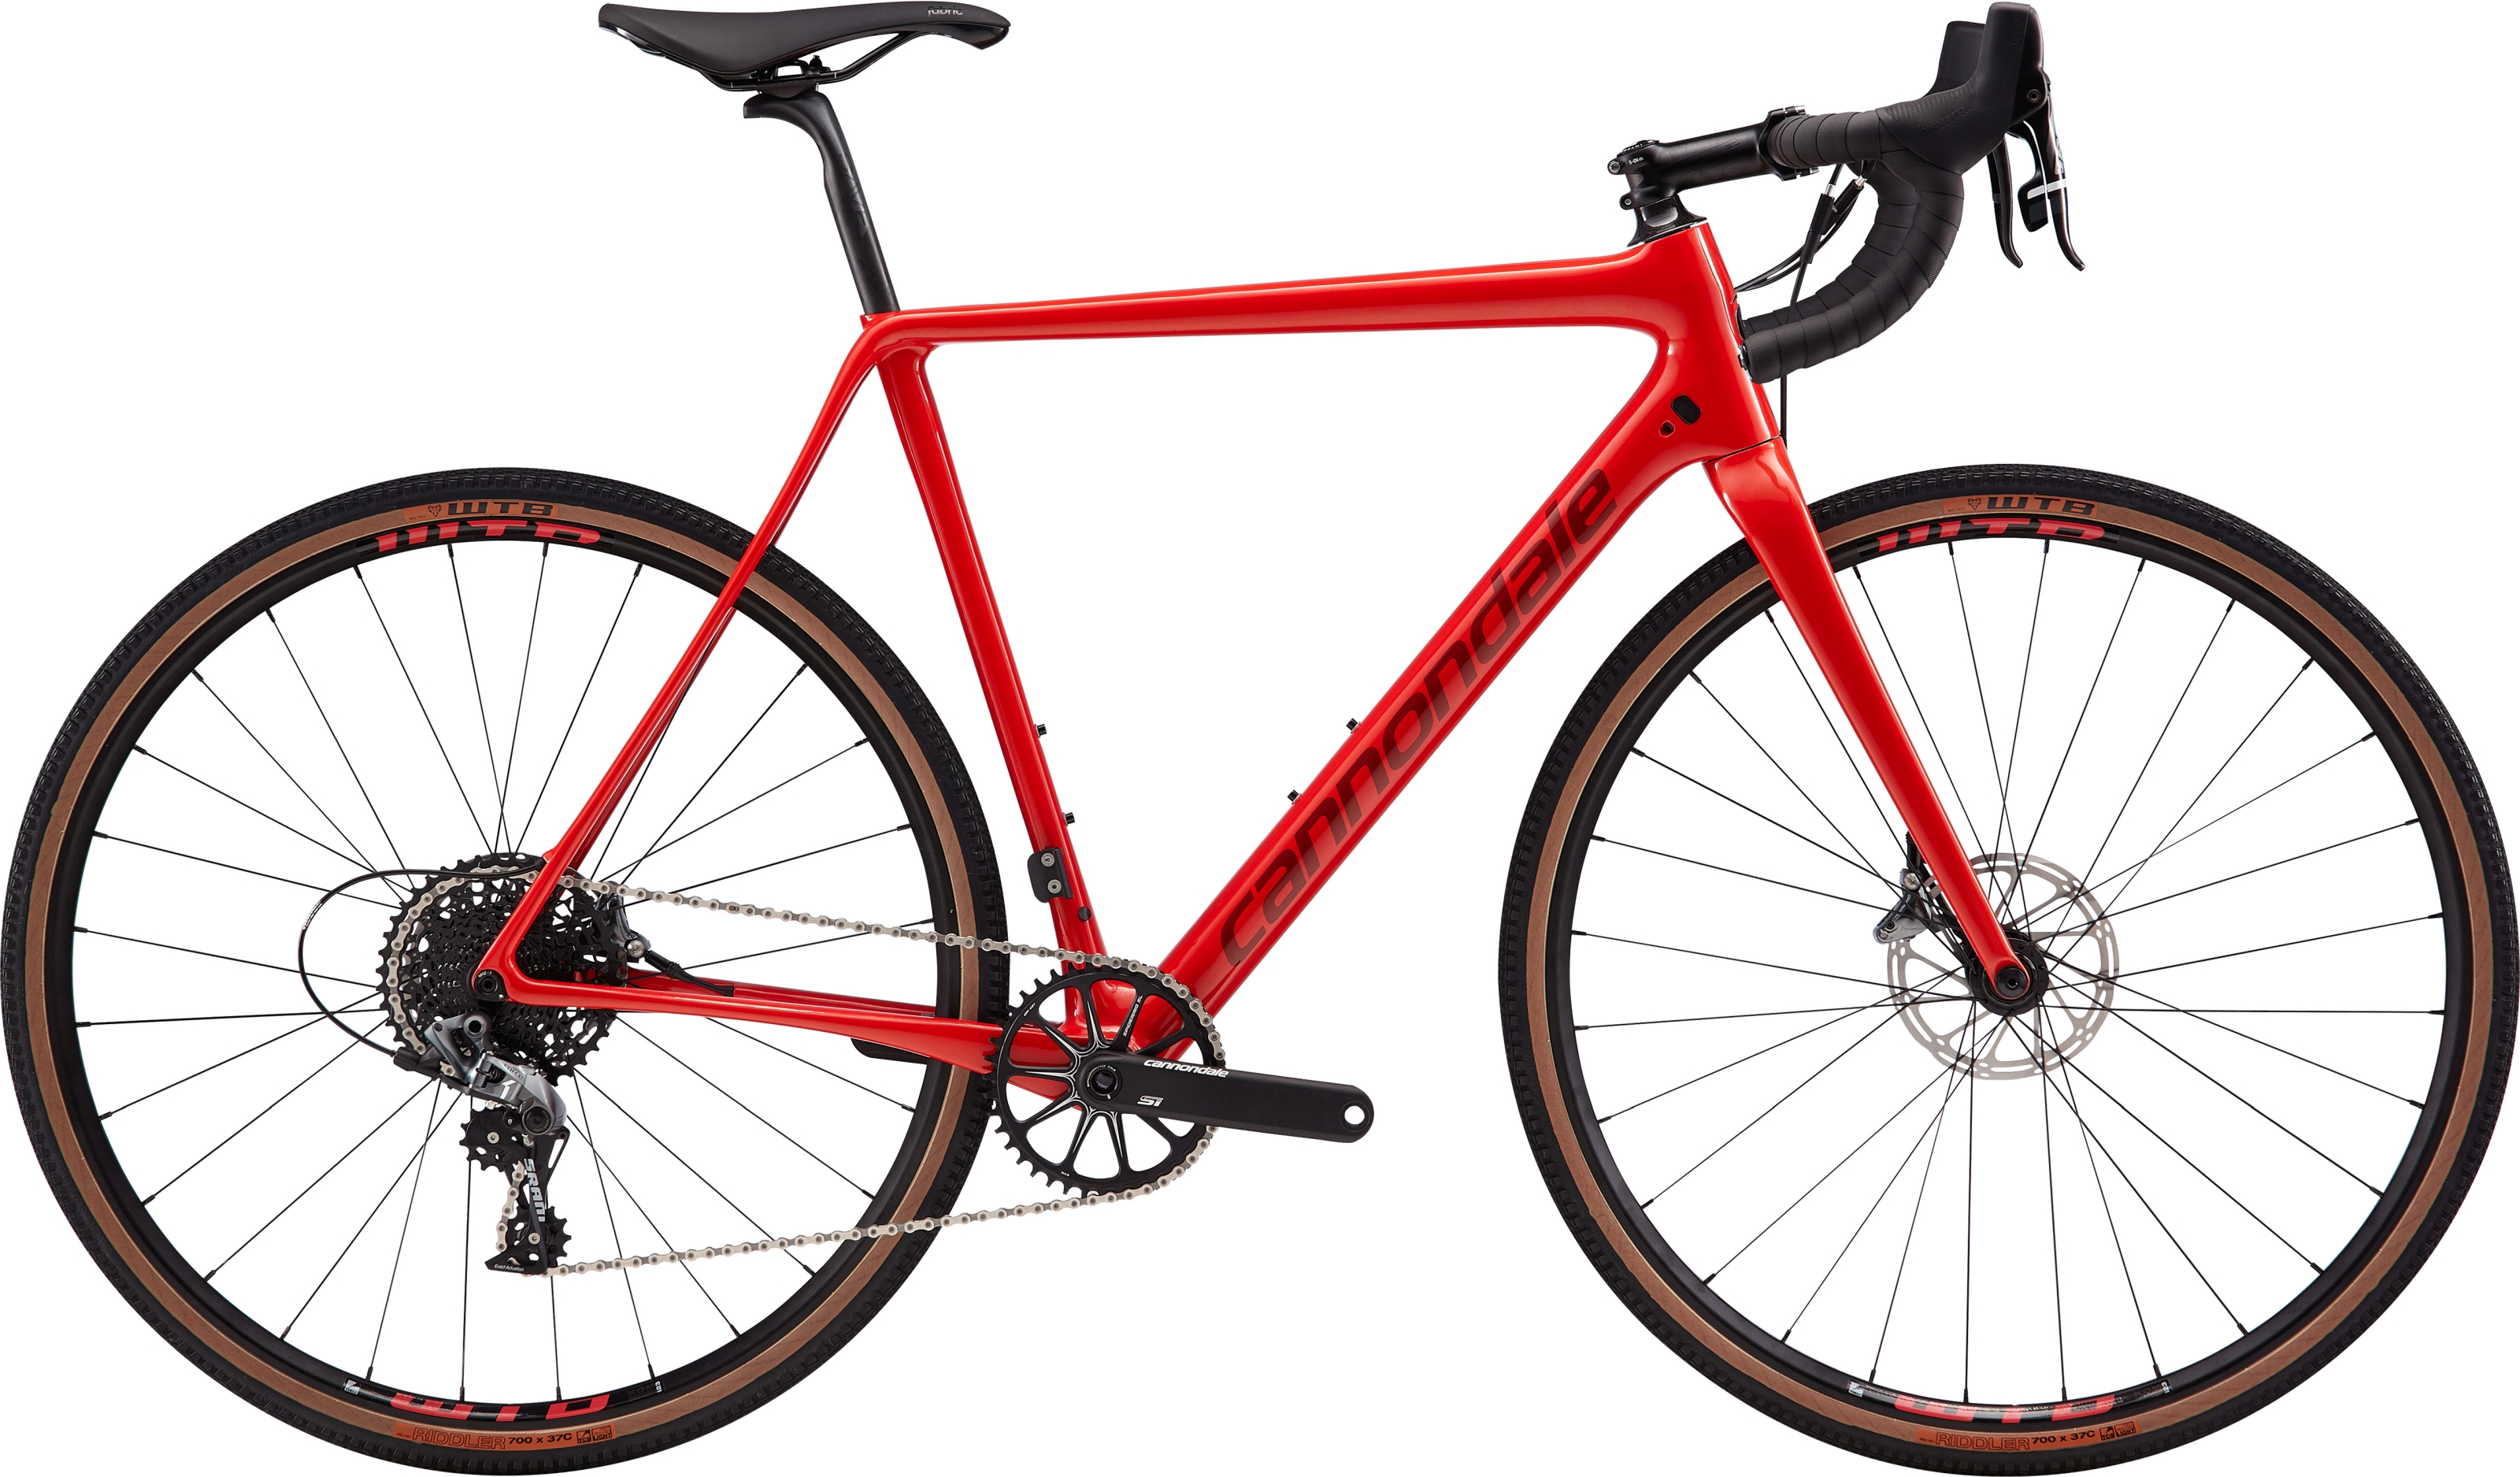 2019 Cannondale SuperX SE Force 1 Carbon Mens Cyclocross bike in Red | Cross-cykler